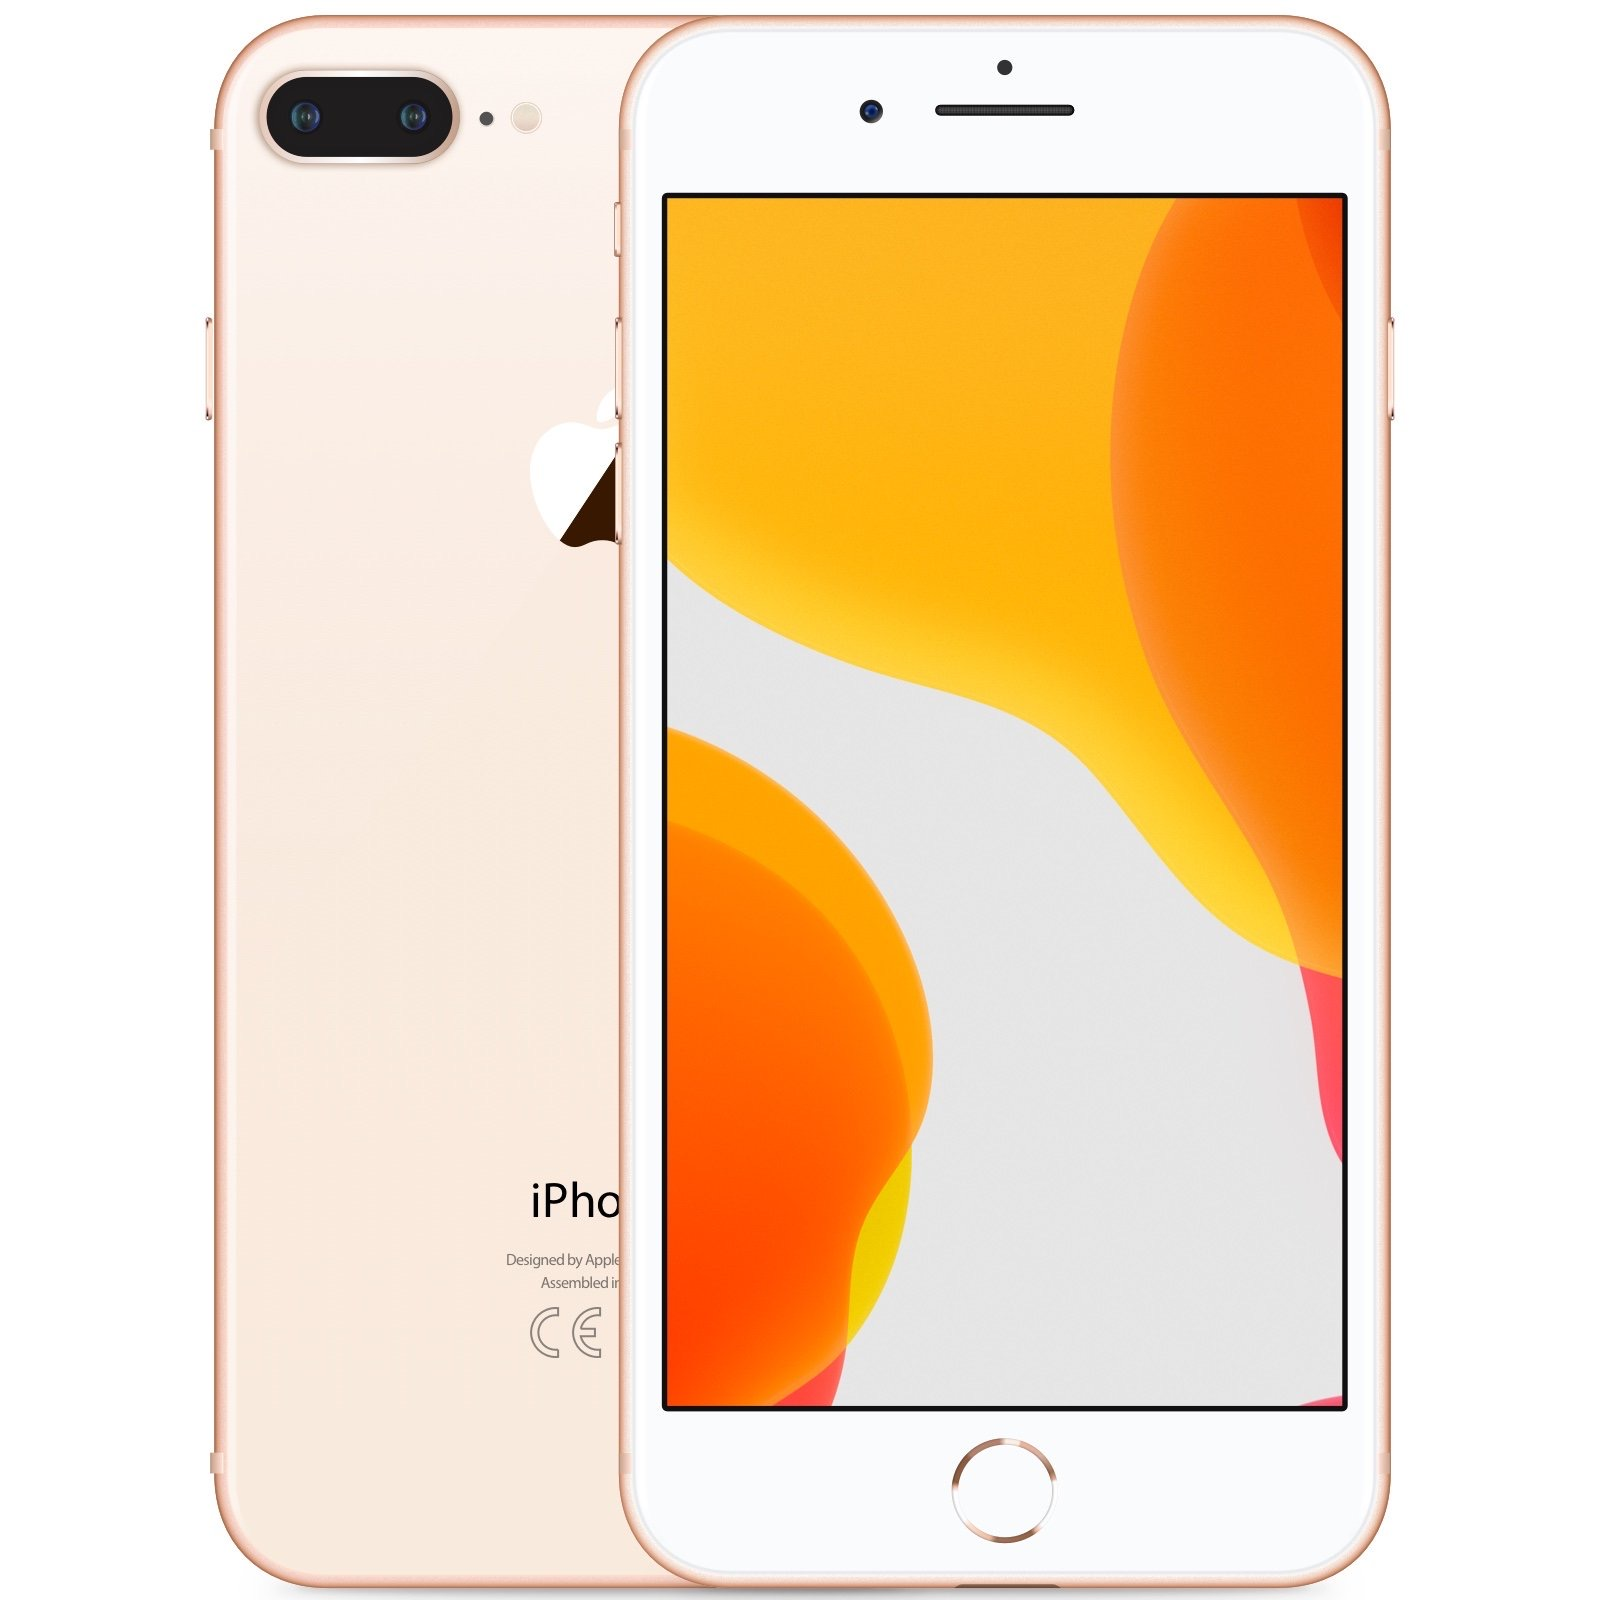 Apple IPhone 8 Plus - 256GB, 4G LTE, Gold  offers